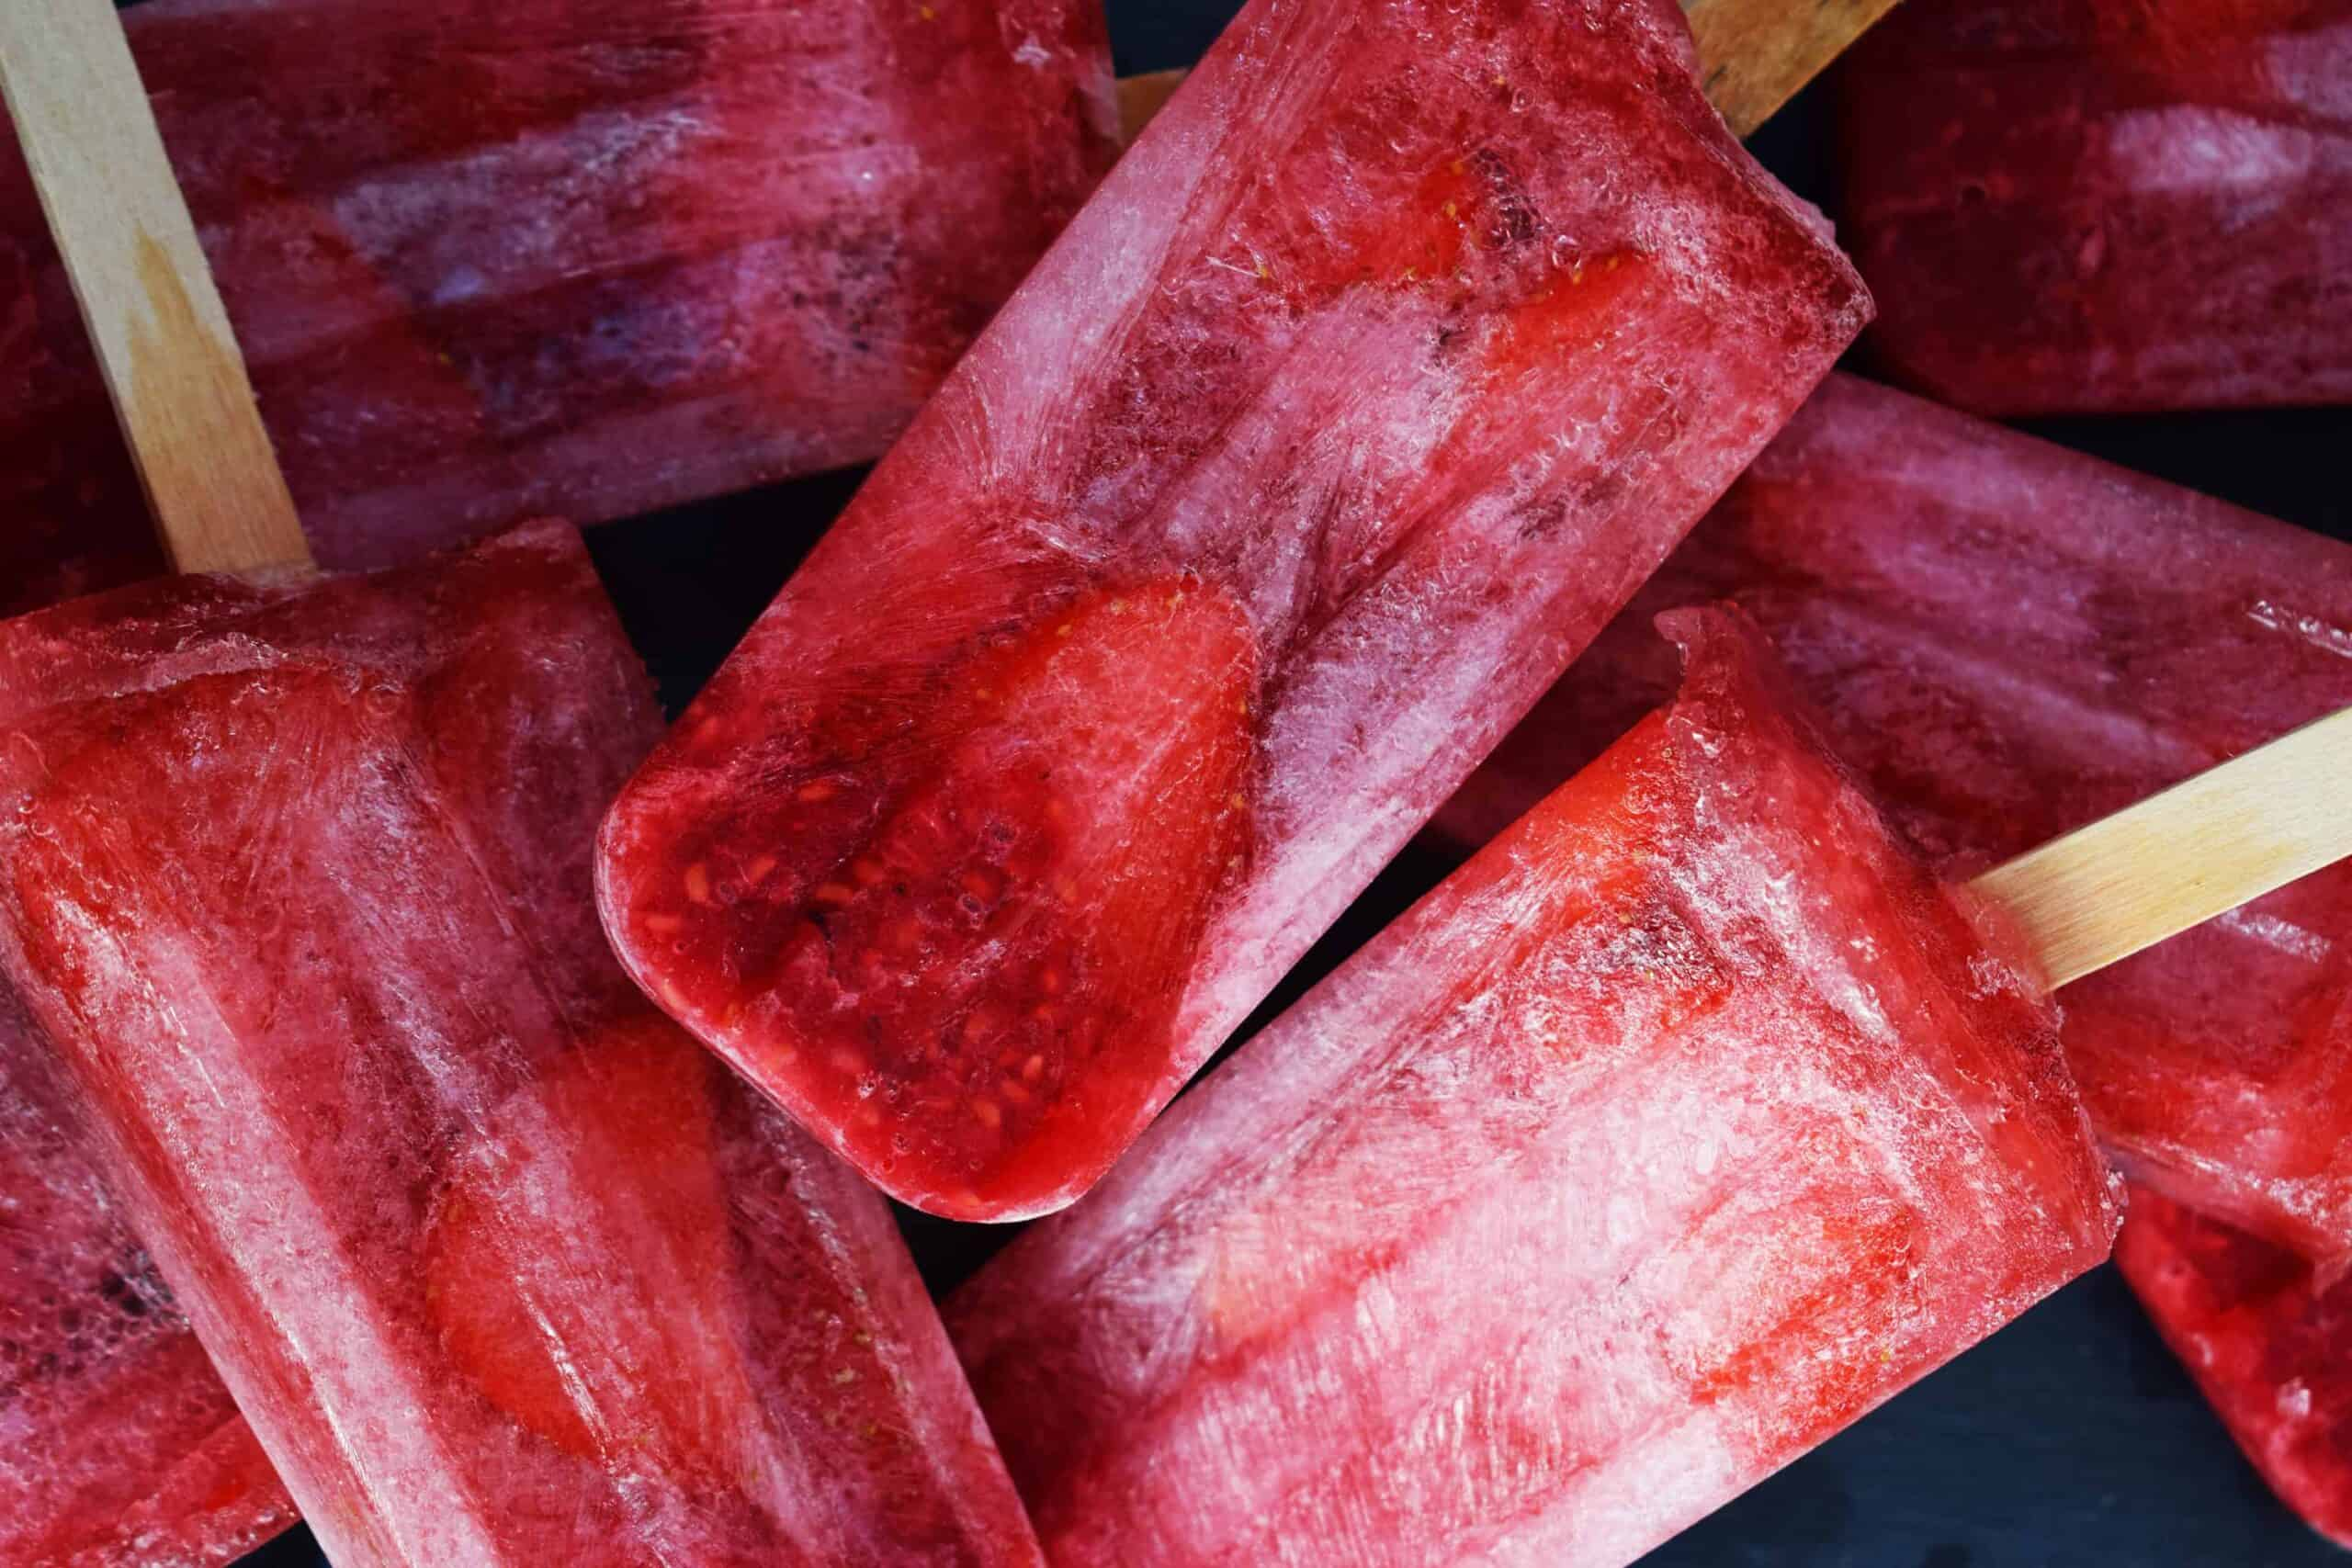 Homemade Fresh Berry Ice Lollies